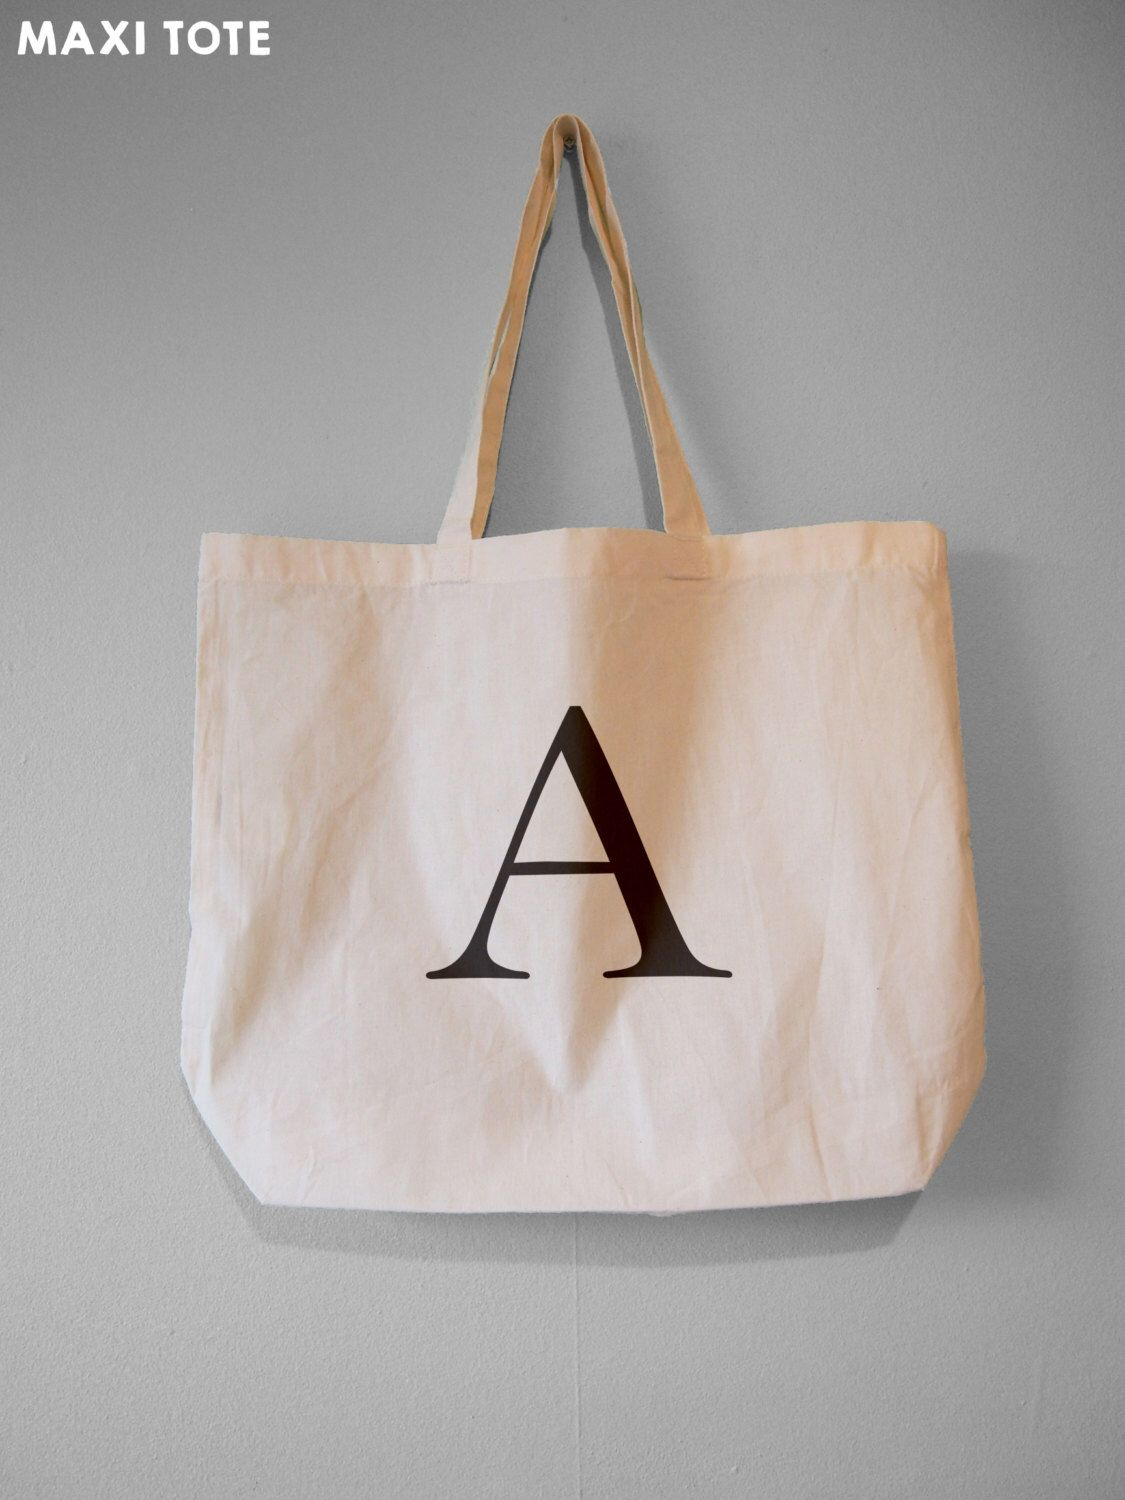 04a02a8fe Monogram Tote, Alphabet Bag, Choose Your Letter - Natural Cotton Tote Bag /Maxi